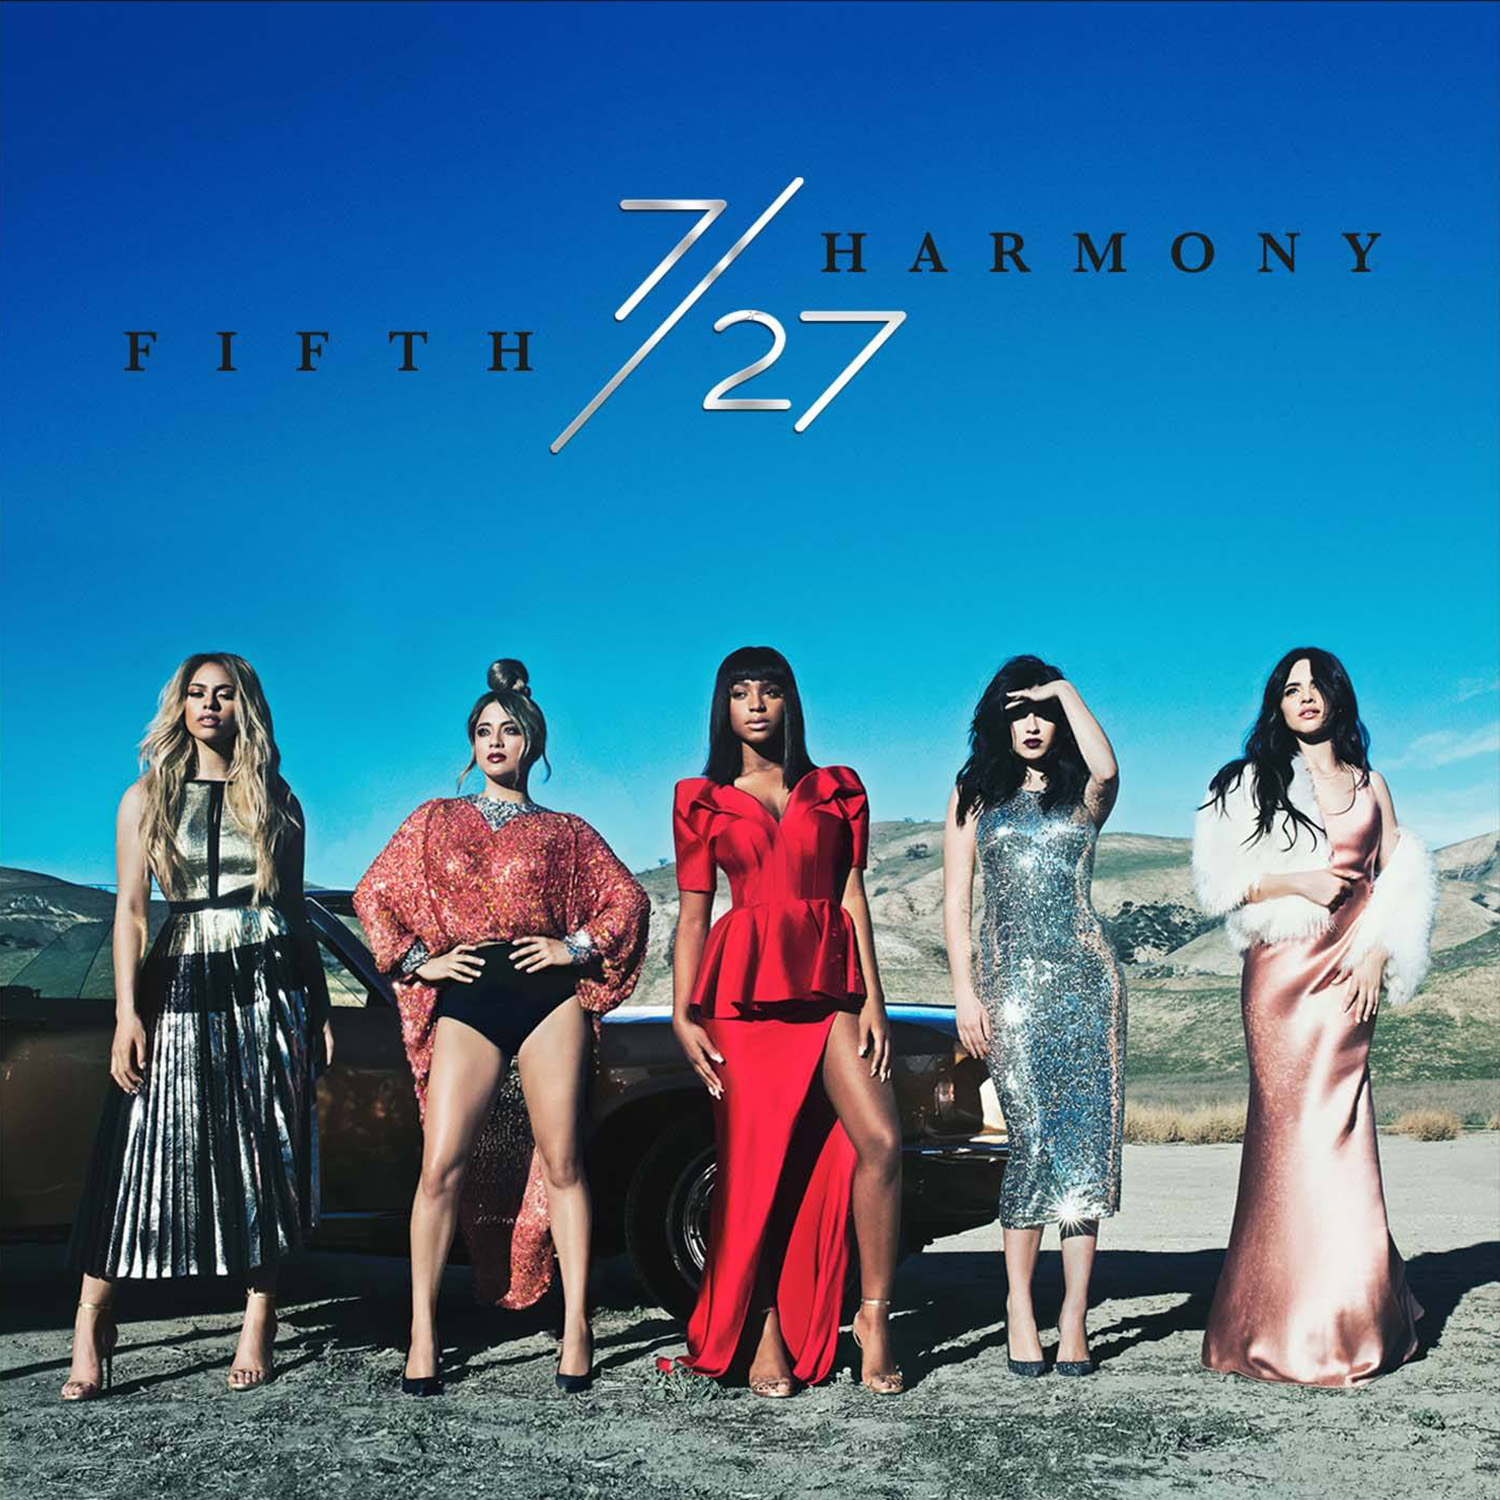 727 (Japan Deluxe Edition) – Fifth Harmony